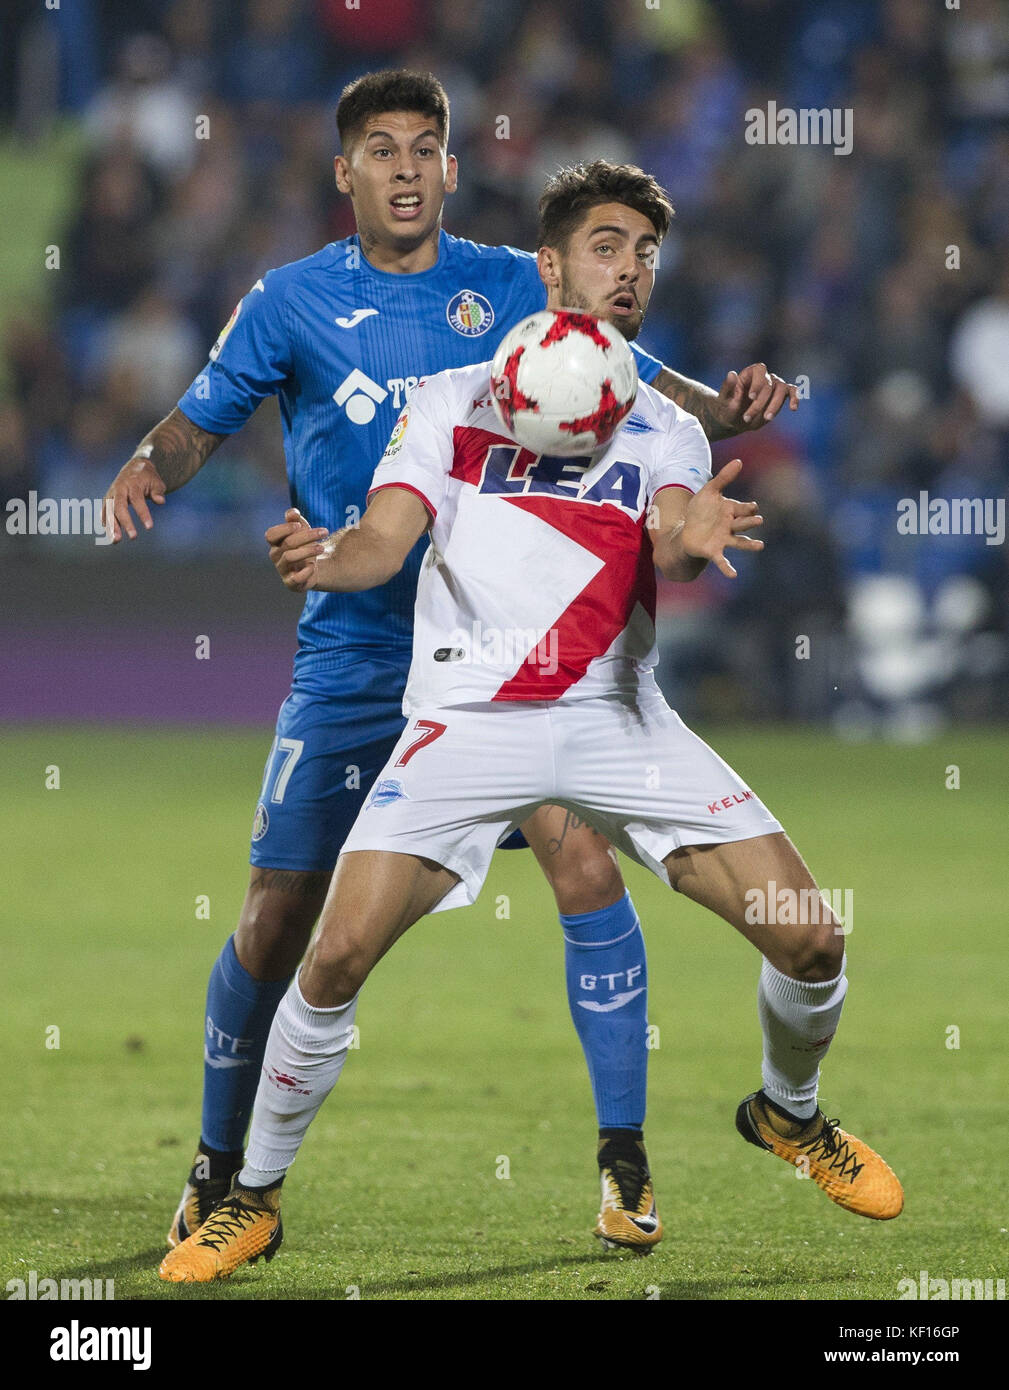 Getafe's defender Mathias Olivera (back) and Alaves' Ruben Sobrino vie for the ball during the King's - Stock Image